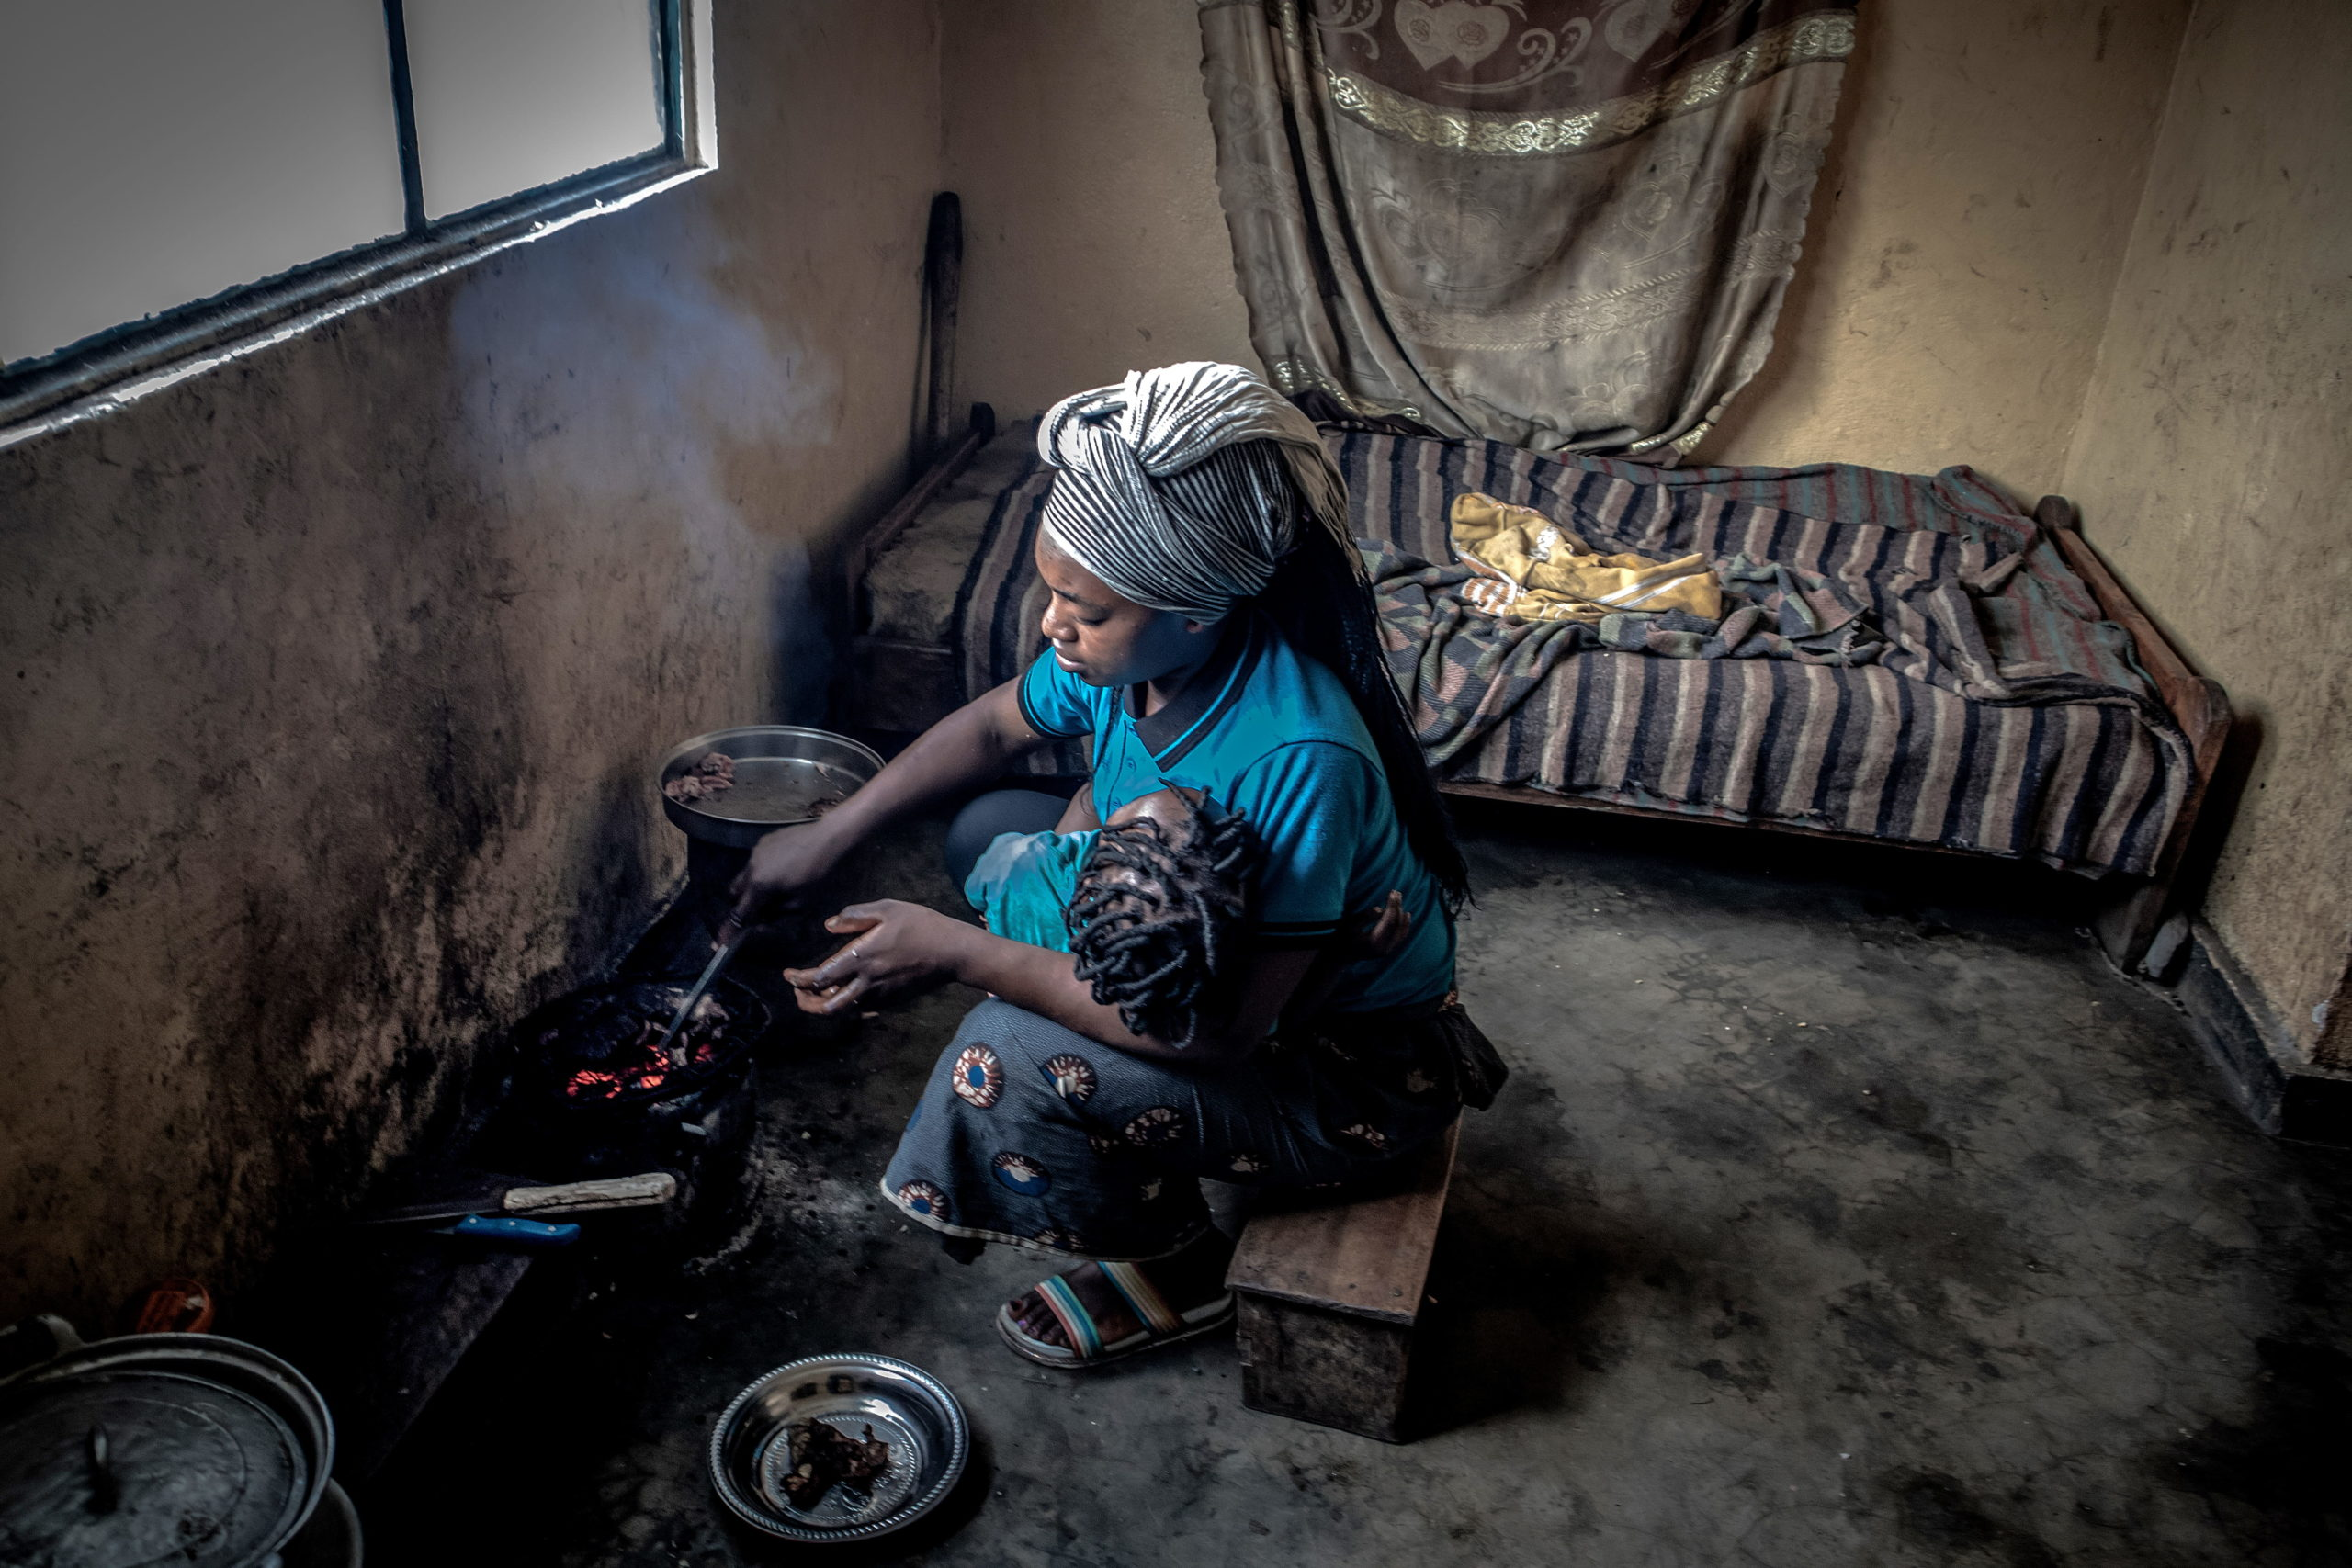 Minova, DRC, December 2020. Charmante prepares a meal on a charcoal stove inside her home in the eastern Congolese town of Minova. © Guerchom Ndebo for Fondation Carmignac